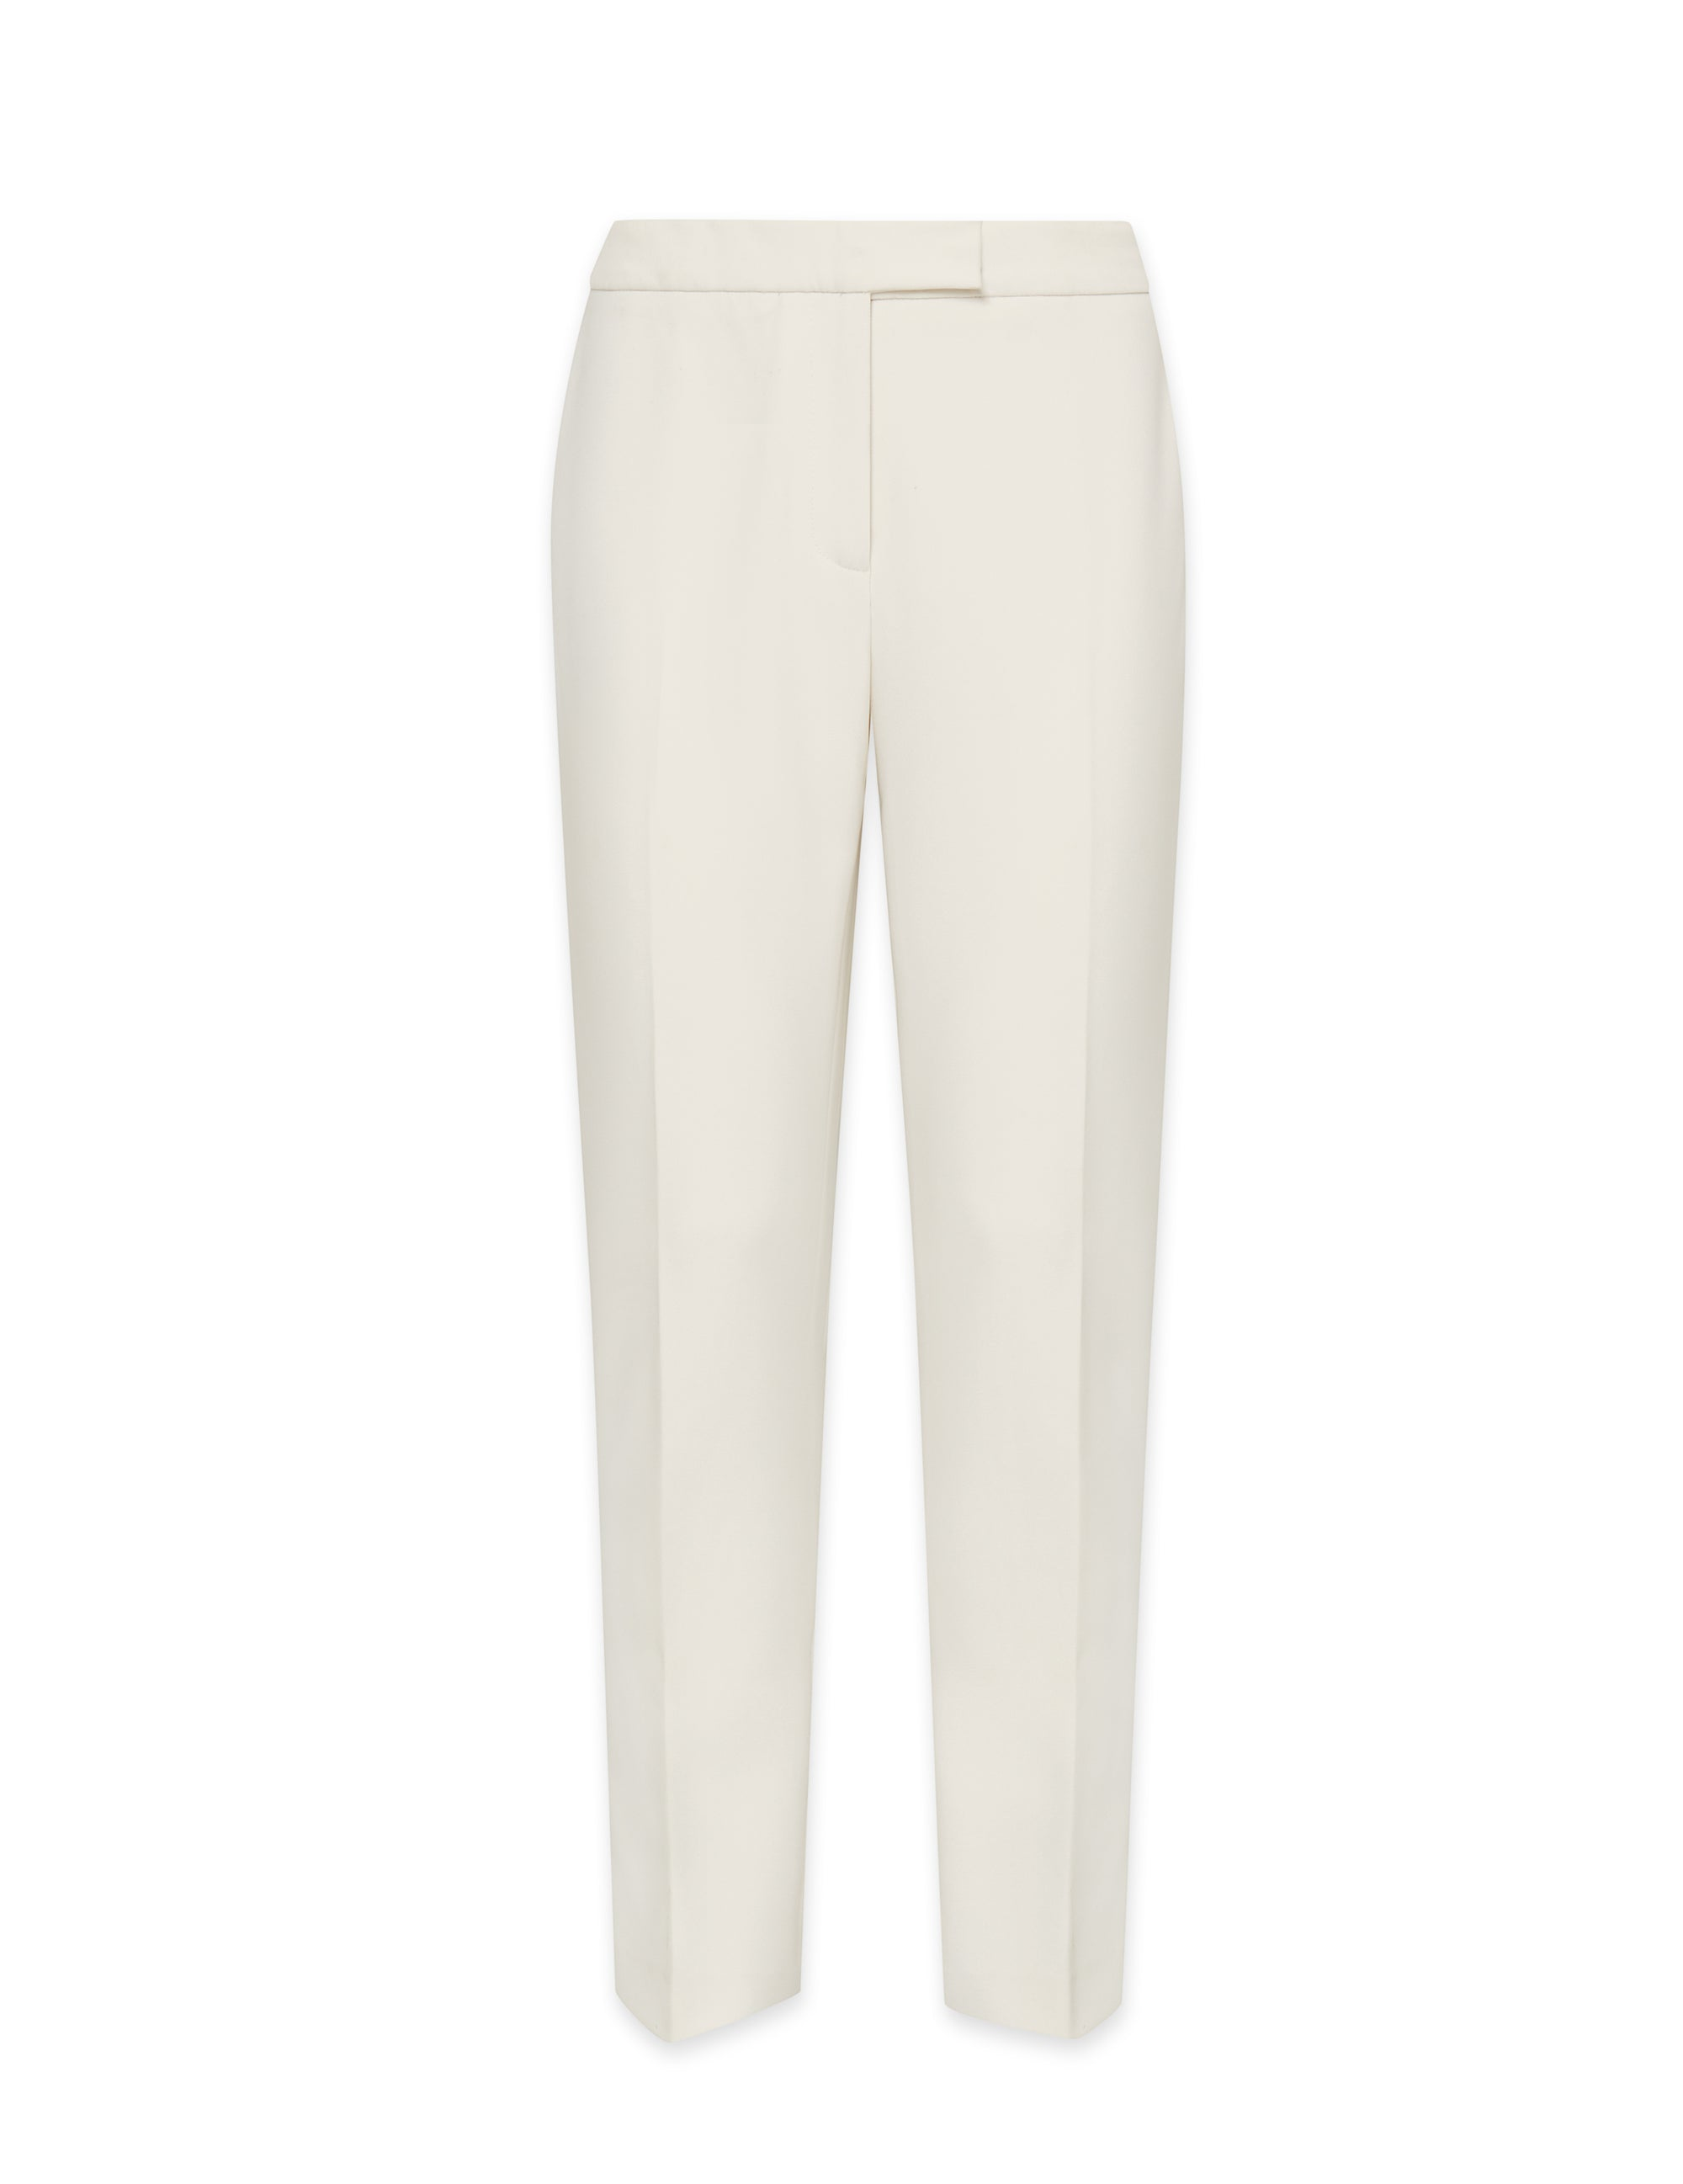 Anne Klein White Contour Stretch Bowie Pant